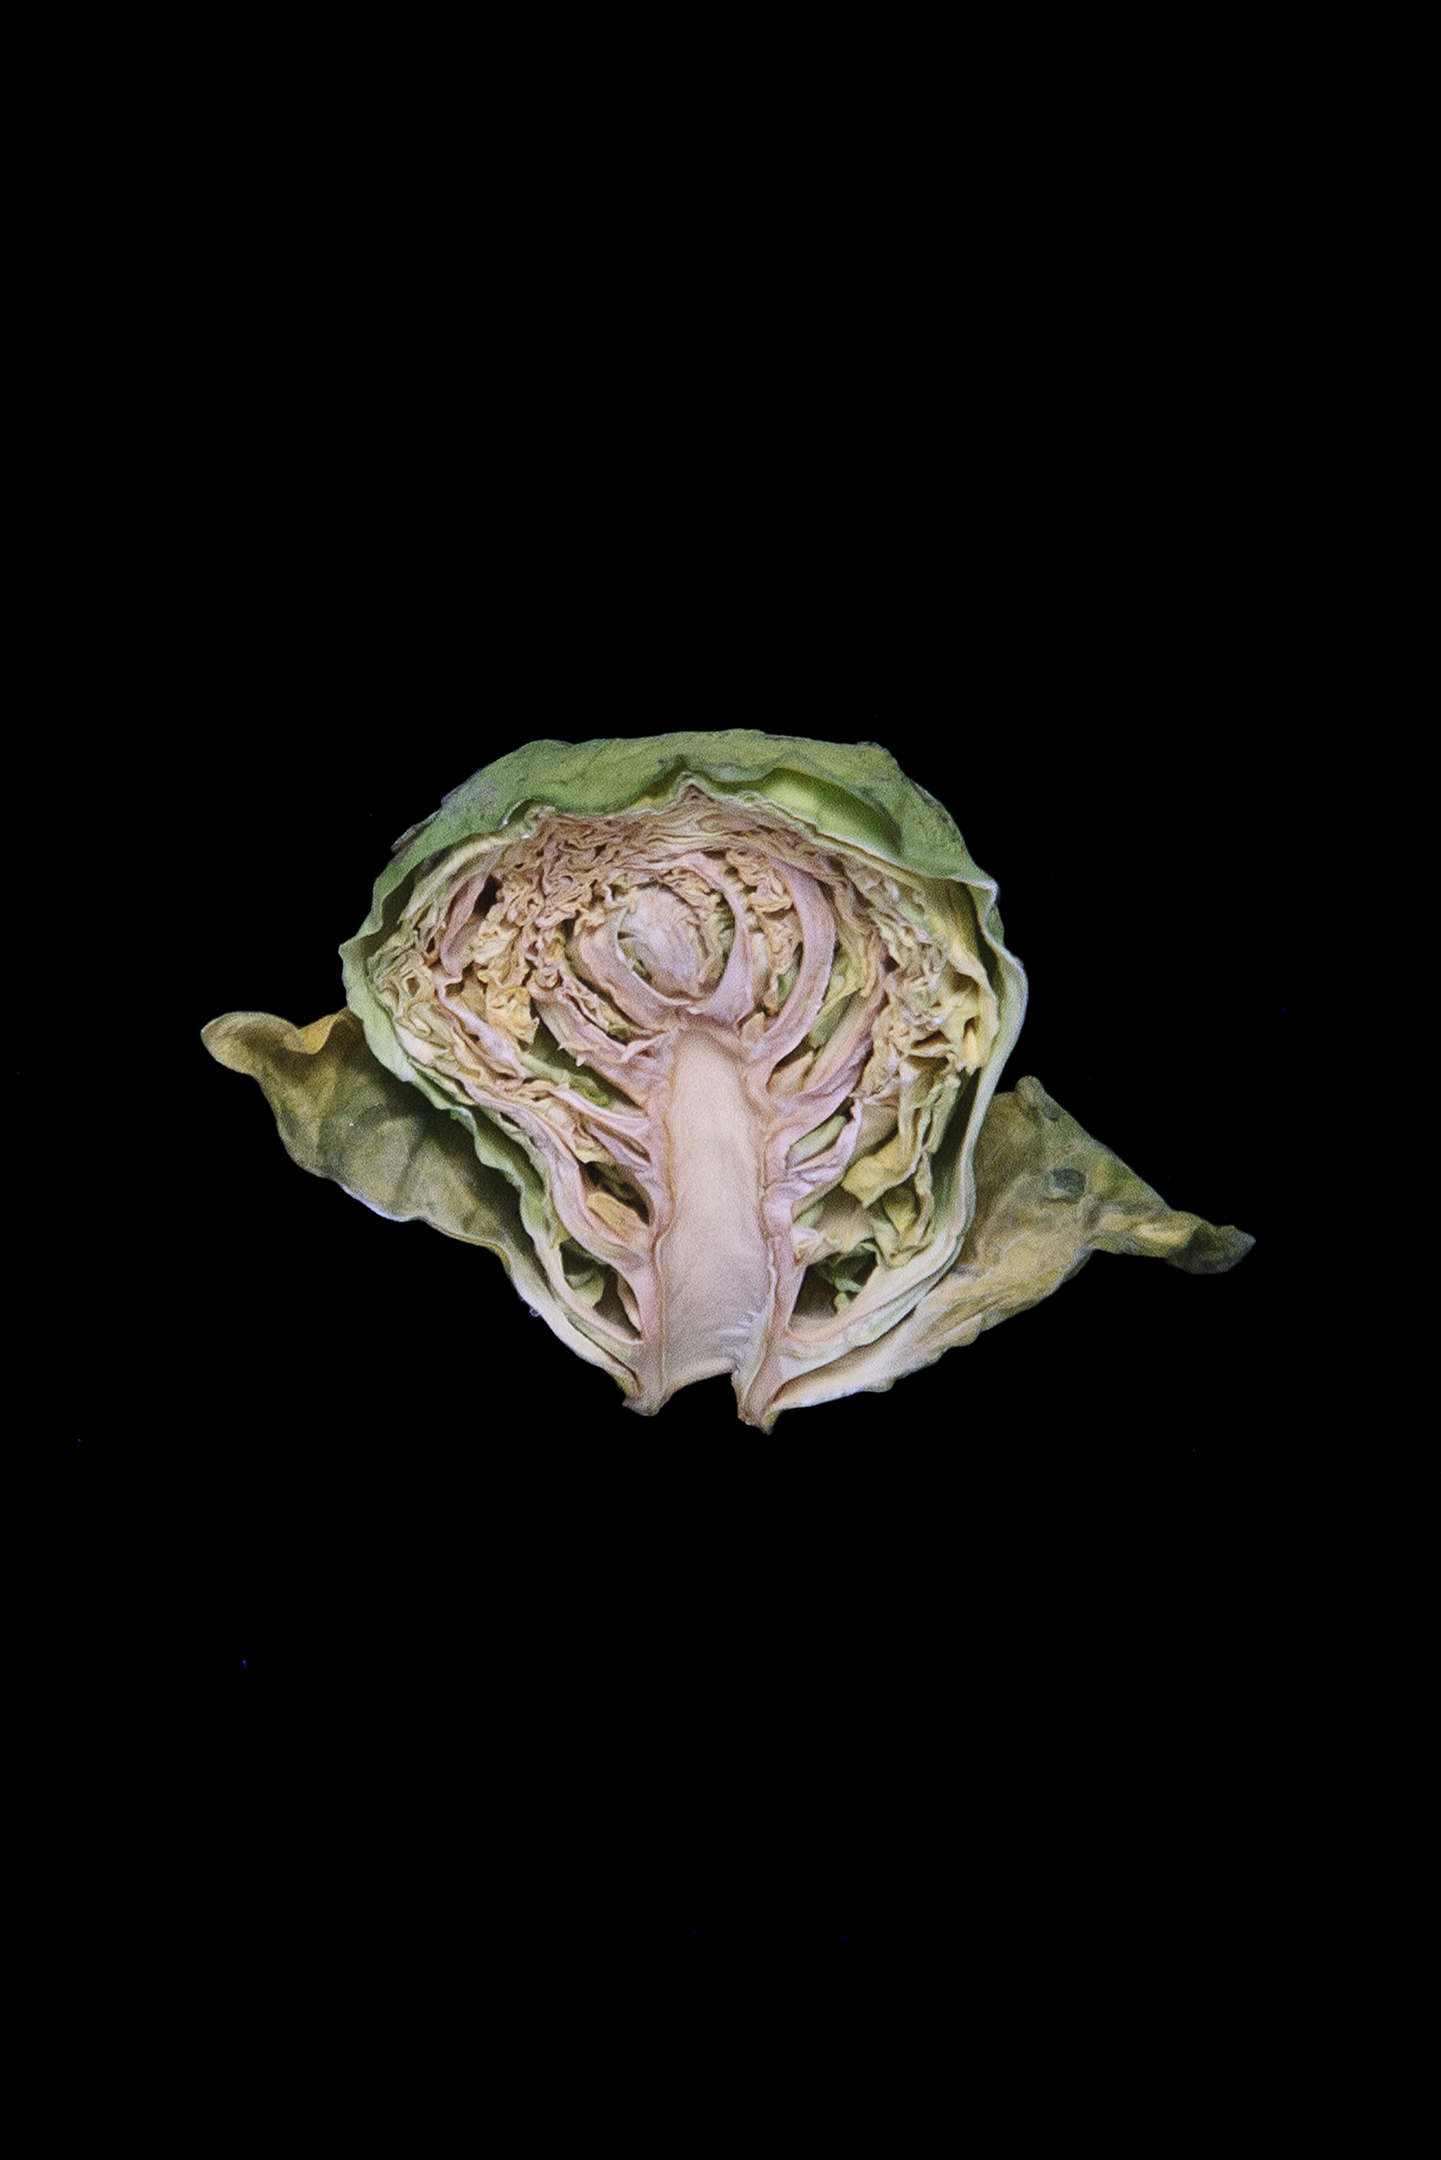 Brussels Sprout, Day Seven